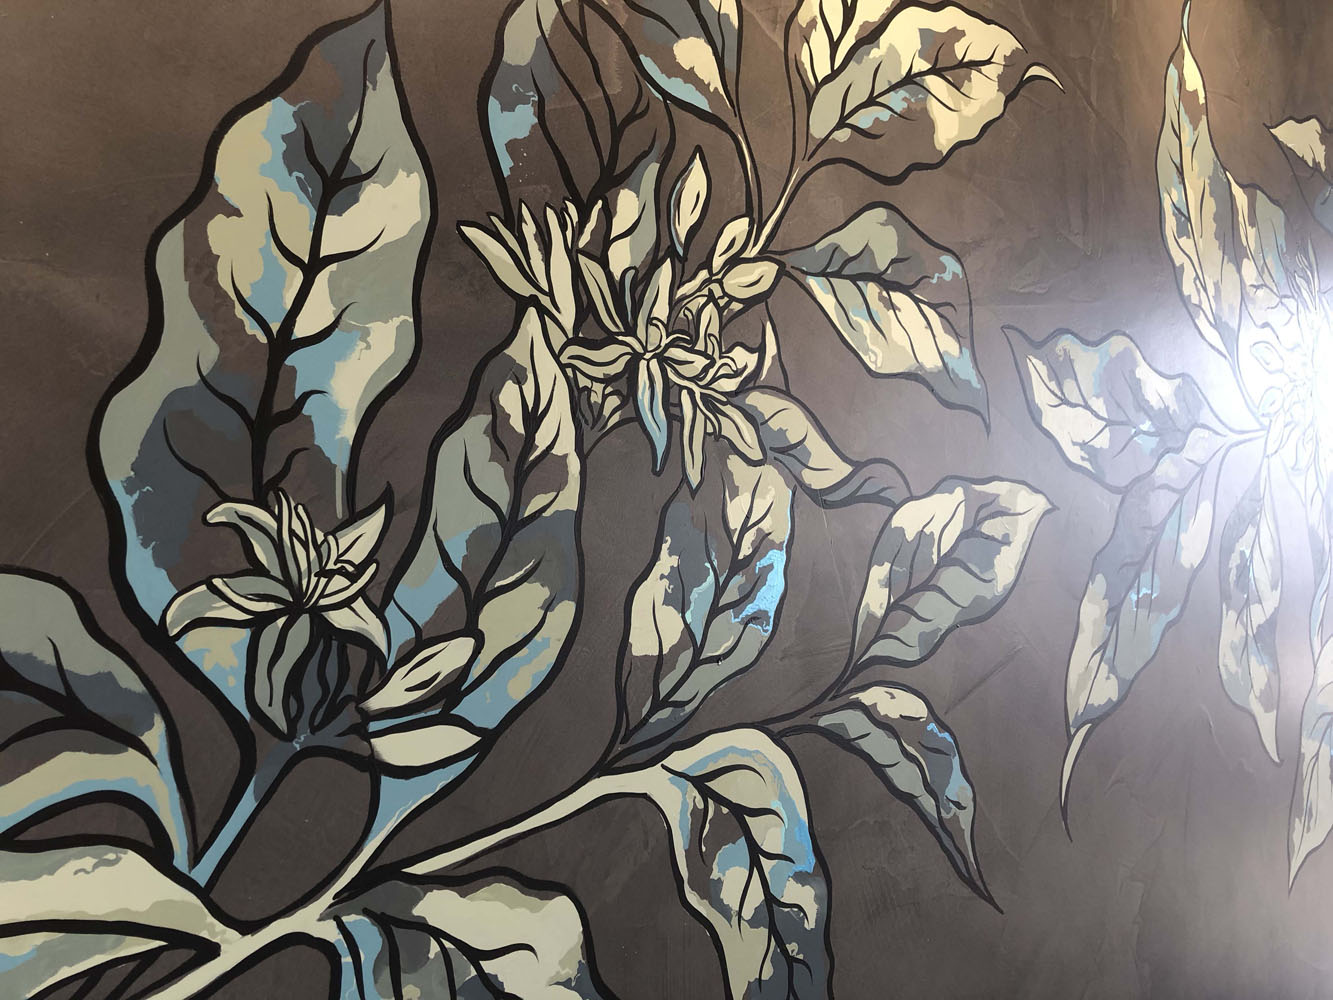 the-art-of-wall-Starbucks-caboulture-botanical-coffee-branch-wall-art-mural-2